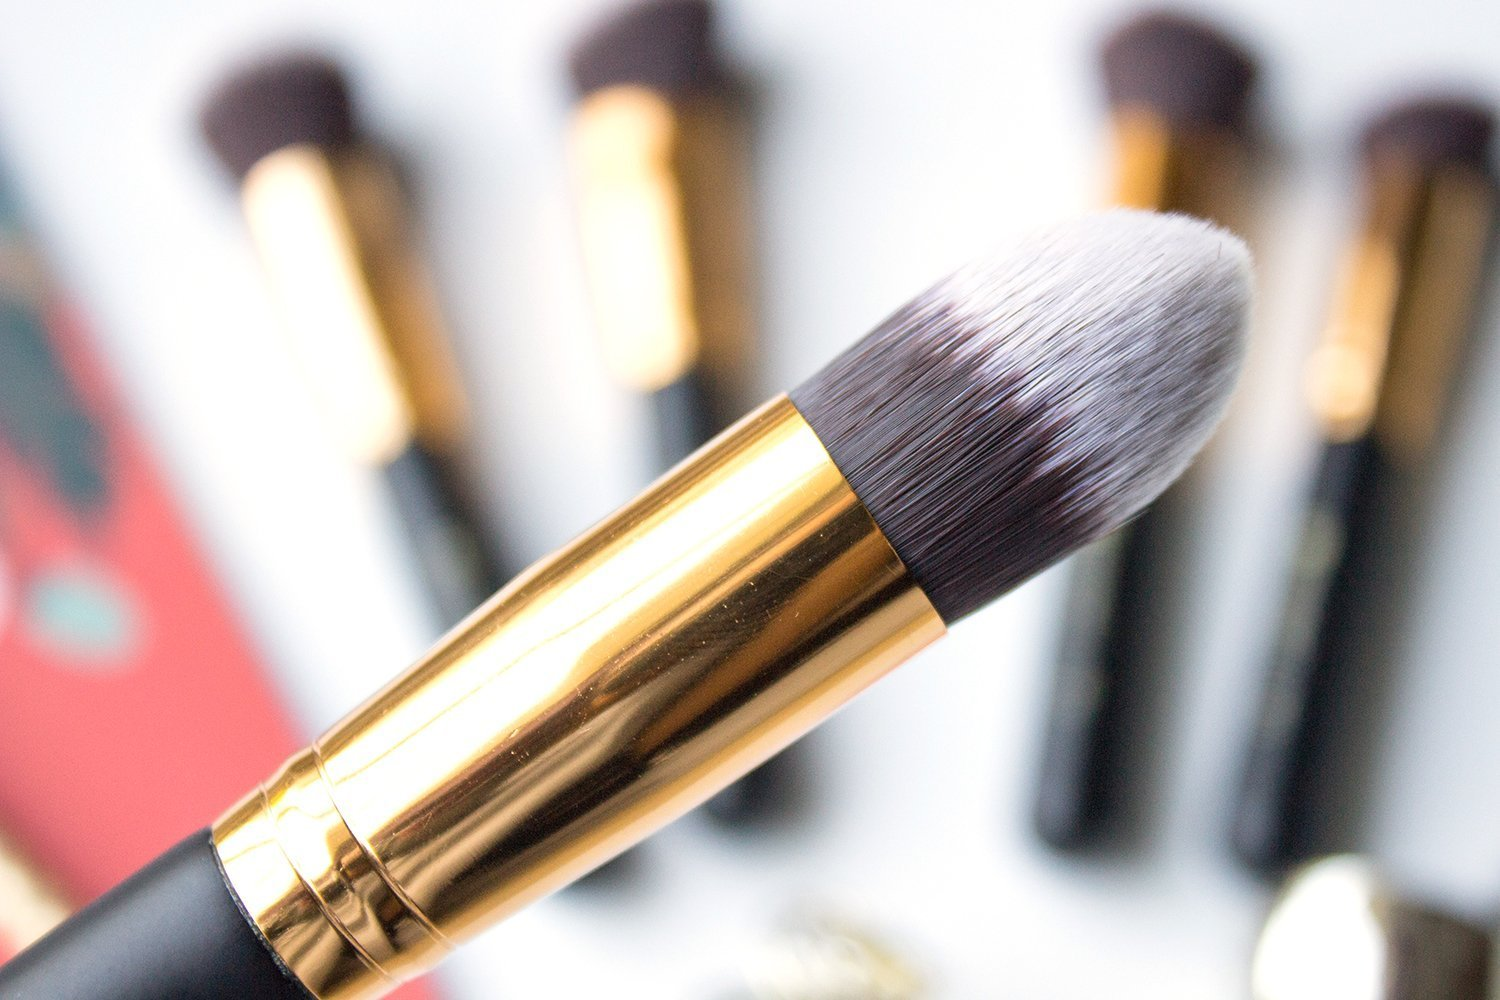 222b97bc7182b 115 Tapered Contouring Face Brush. The precise tip of this brush is great  for applying product to targeted areas of the face or for blending around  tight ...